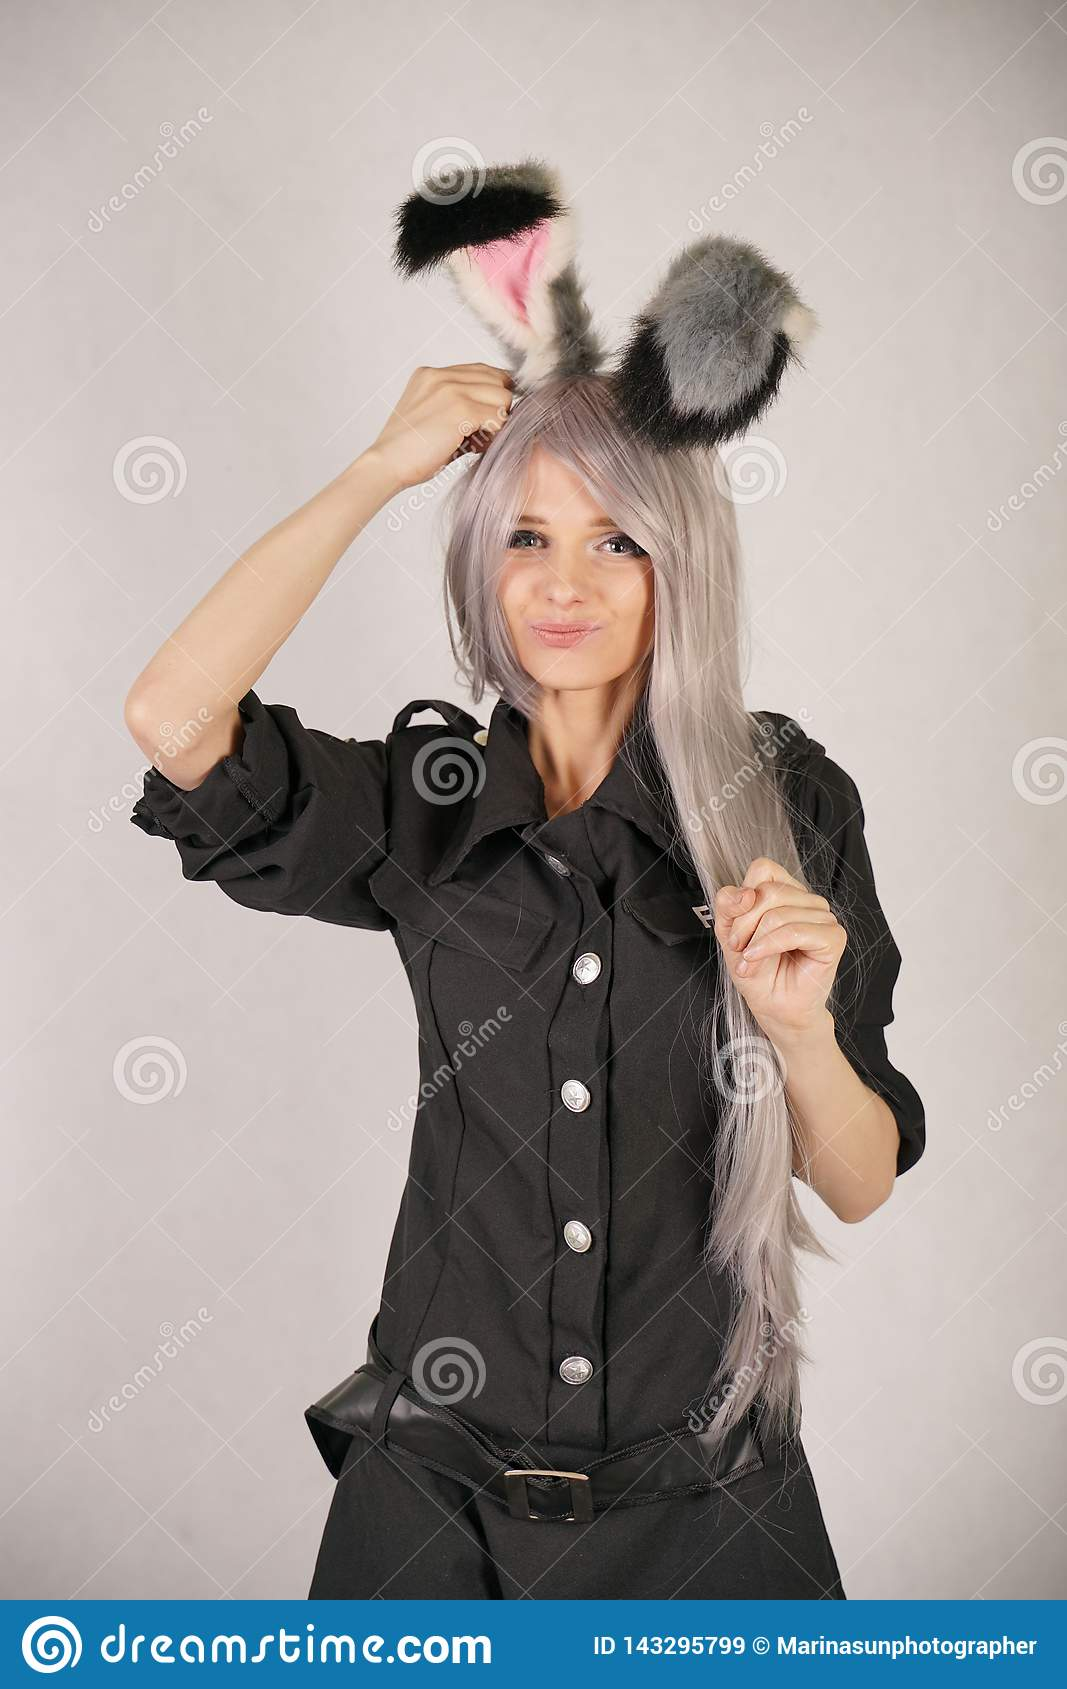 Teen girl in FBI black carnival dress with big fur rabbit ears loves cosplay and stands on white Studio background